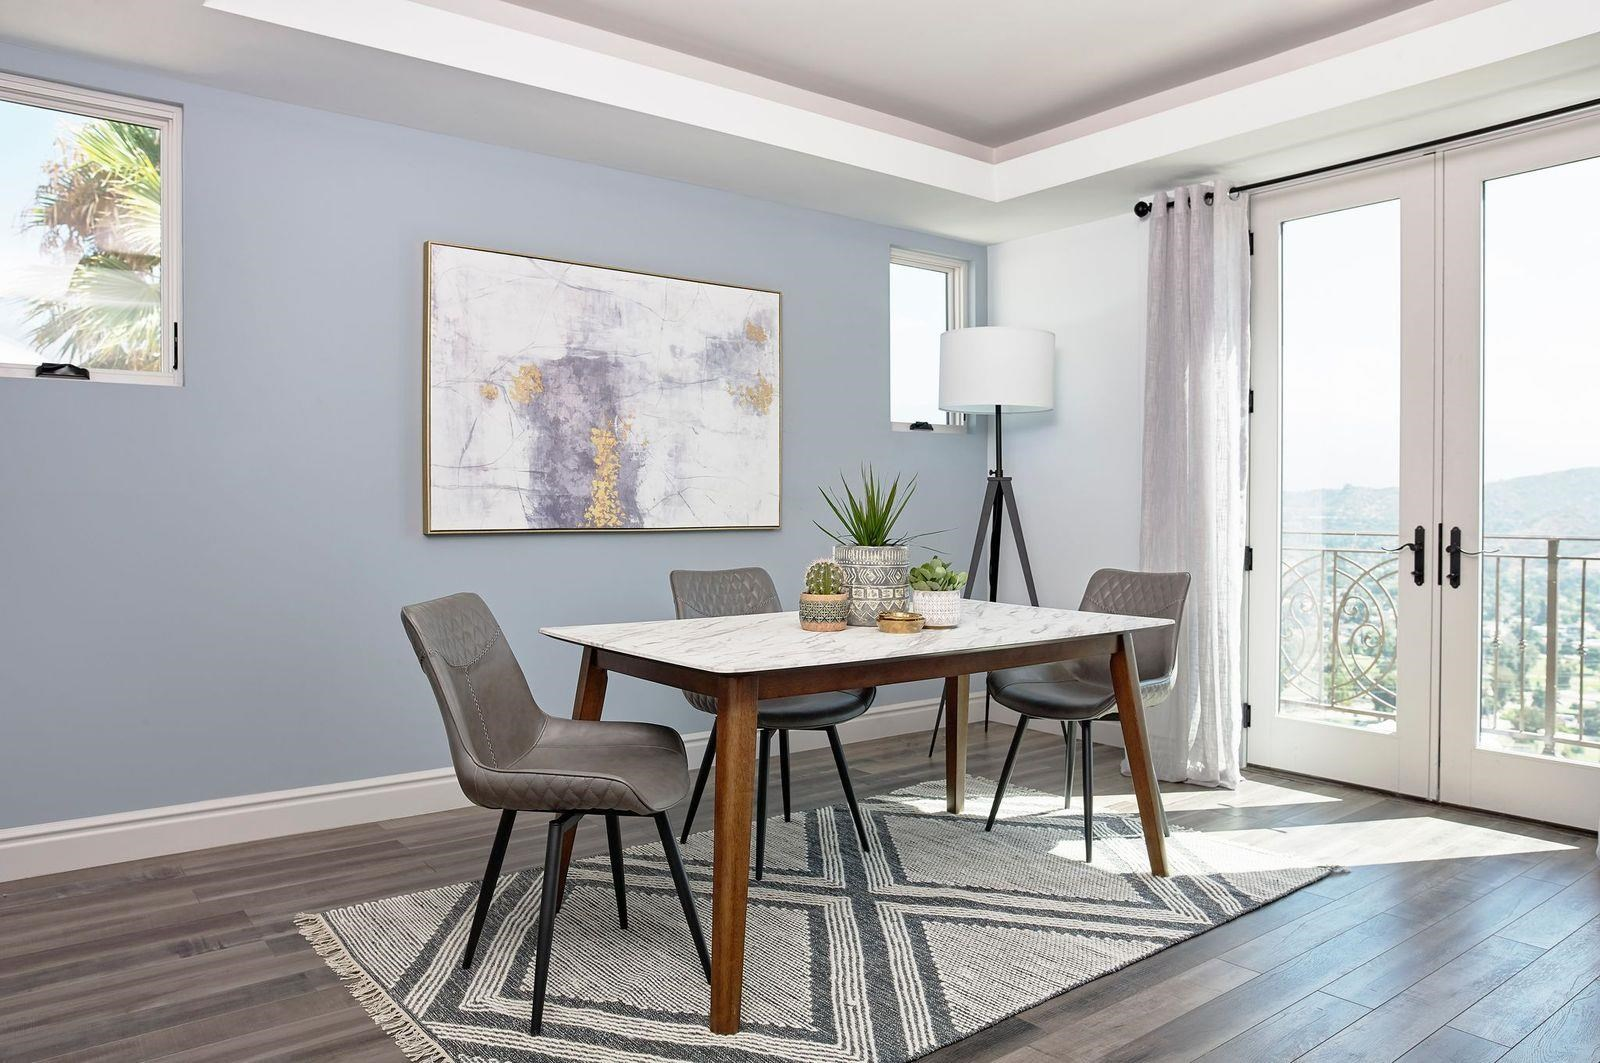 Everett 5-Piece Dining Set by Coaster at Beck's Furniture